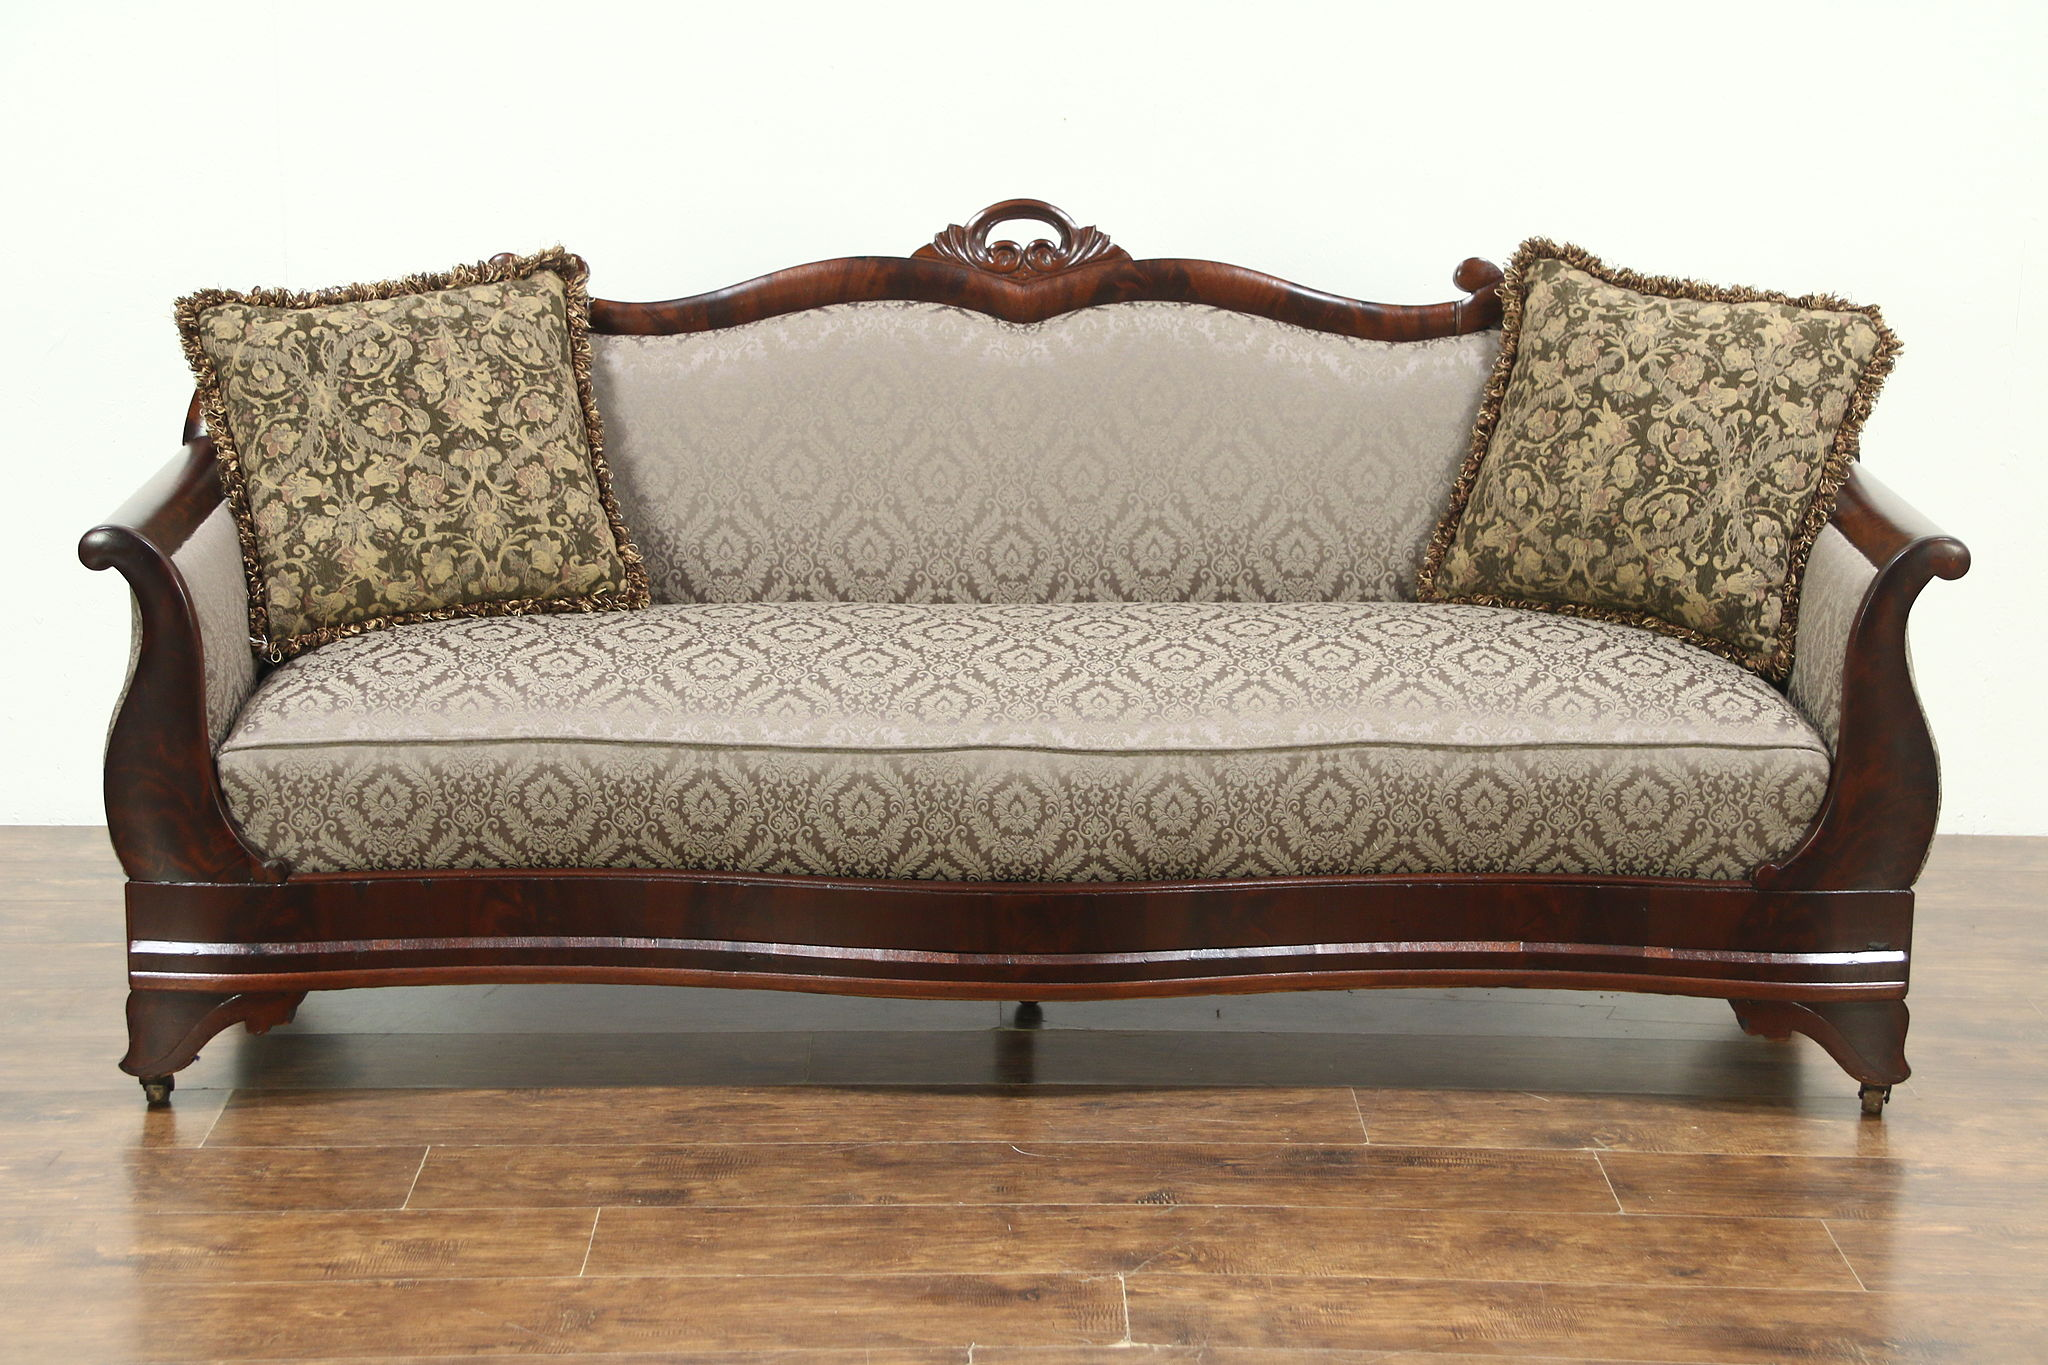 pin chaise on antiques buttons longue regina by couches blogger victorian vintage couch mcgill sofa sofas antique pinterest canapes